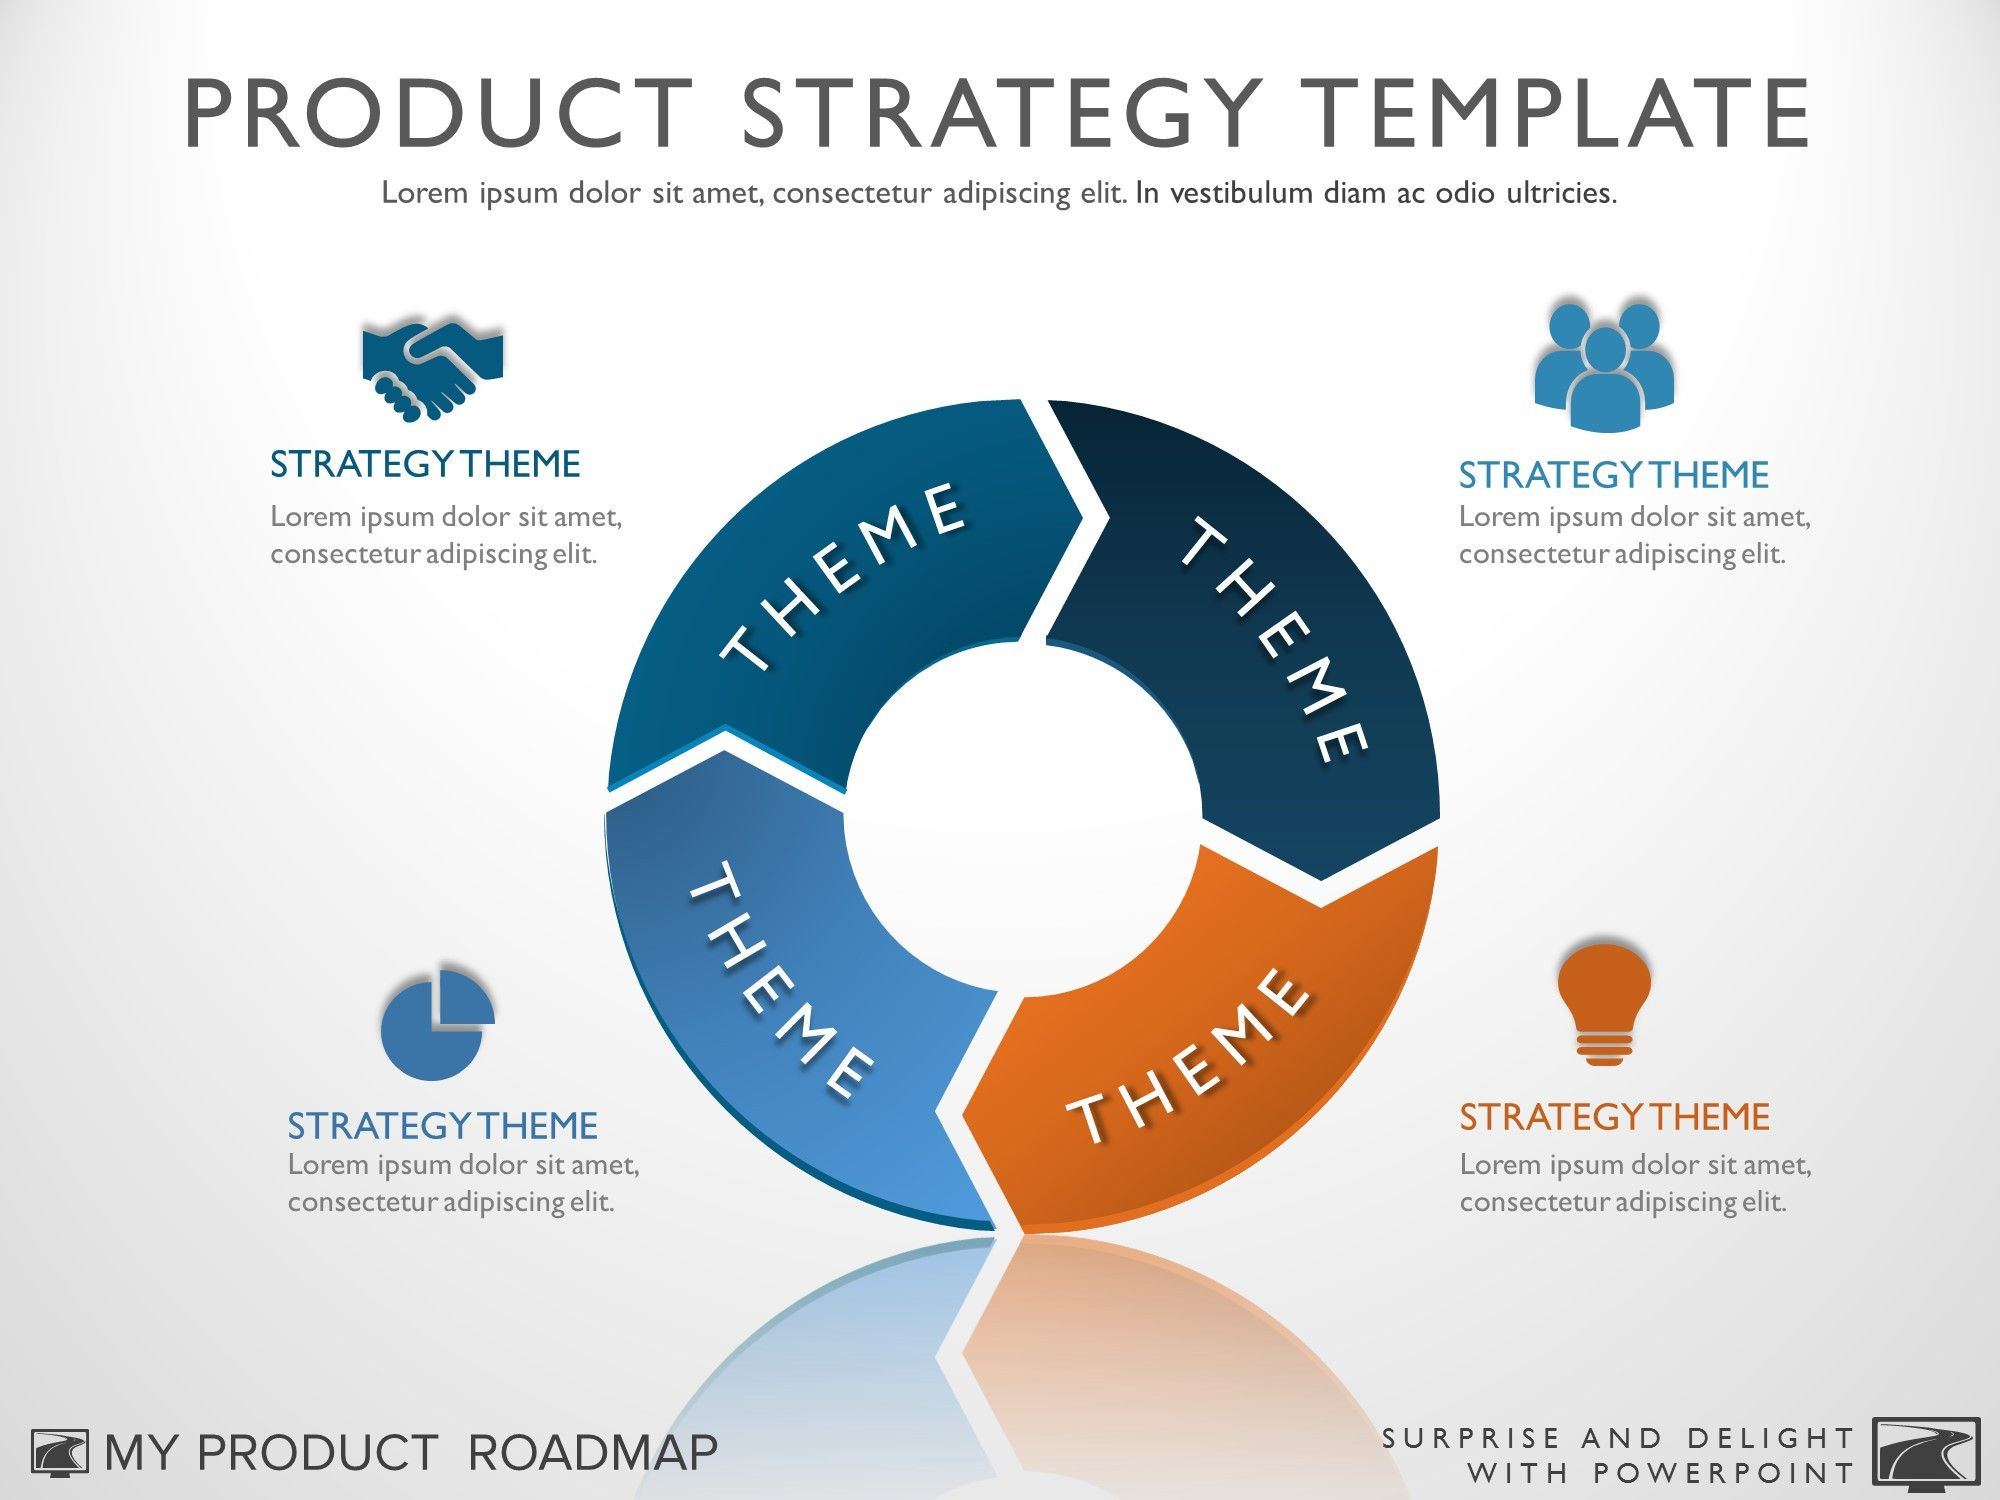 Product Strategy Template U2013 My Product Roadmap